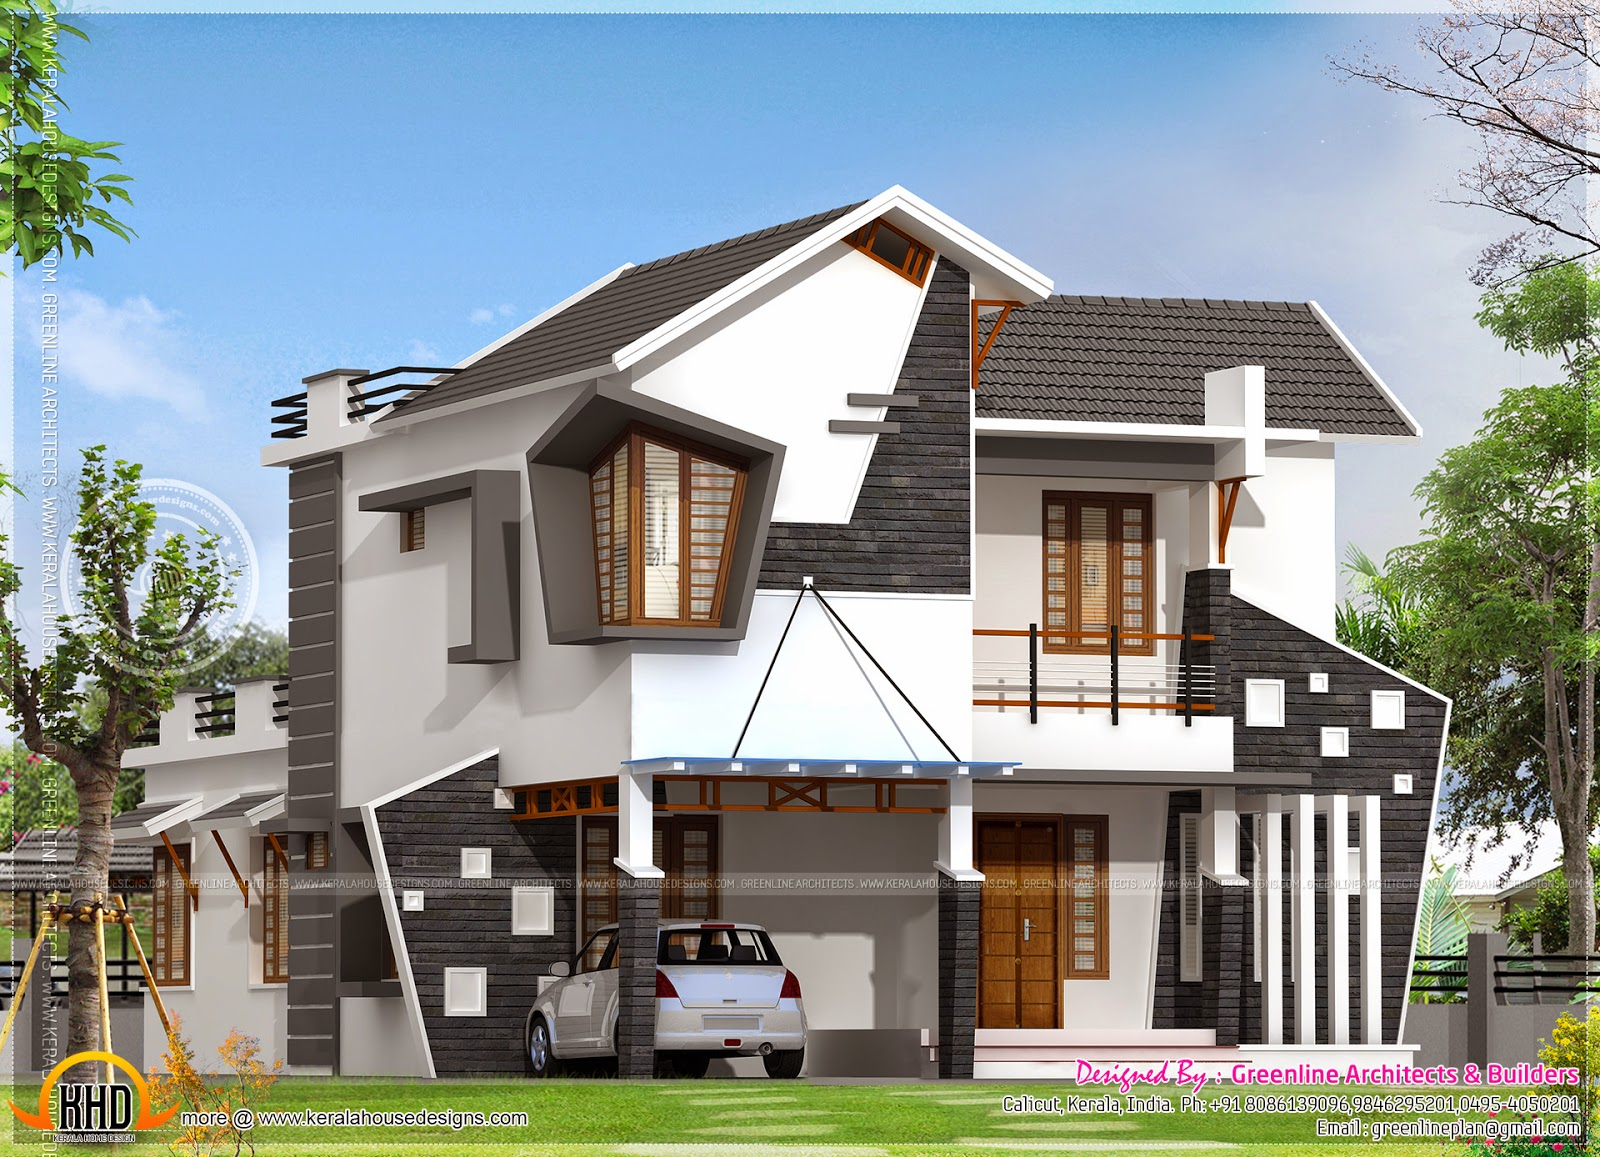 Unique house exterior in 2154 square feet  Kerala home design and floor plans